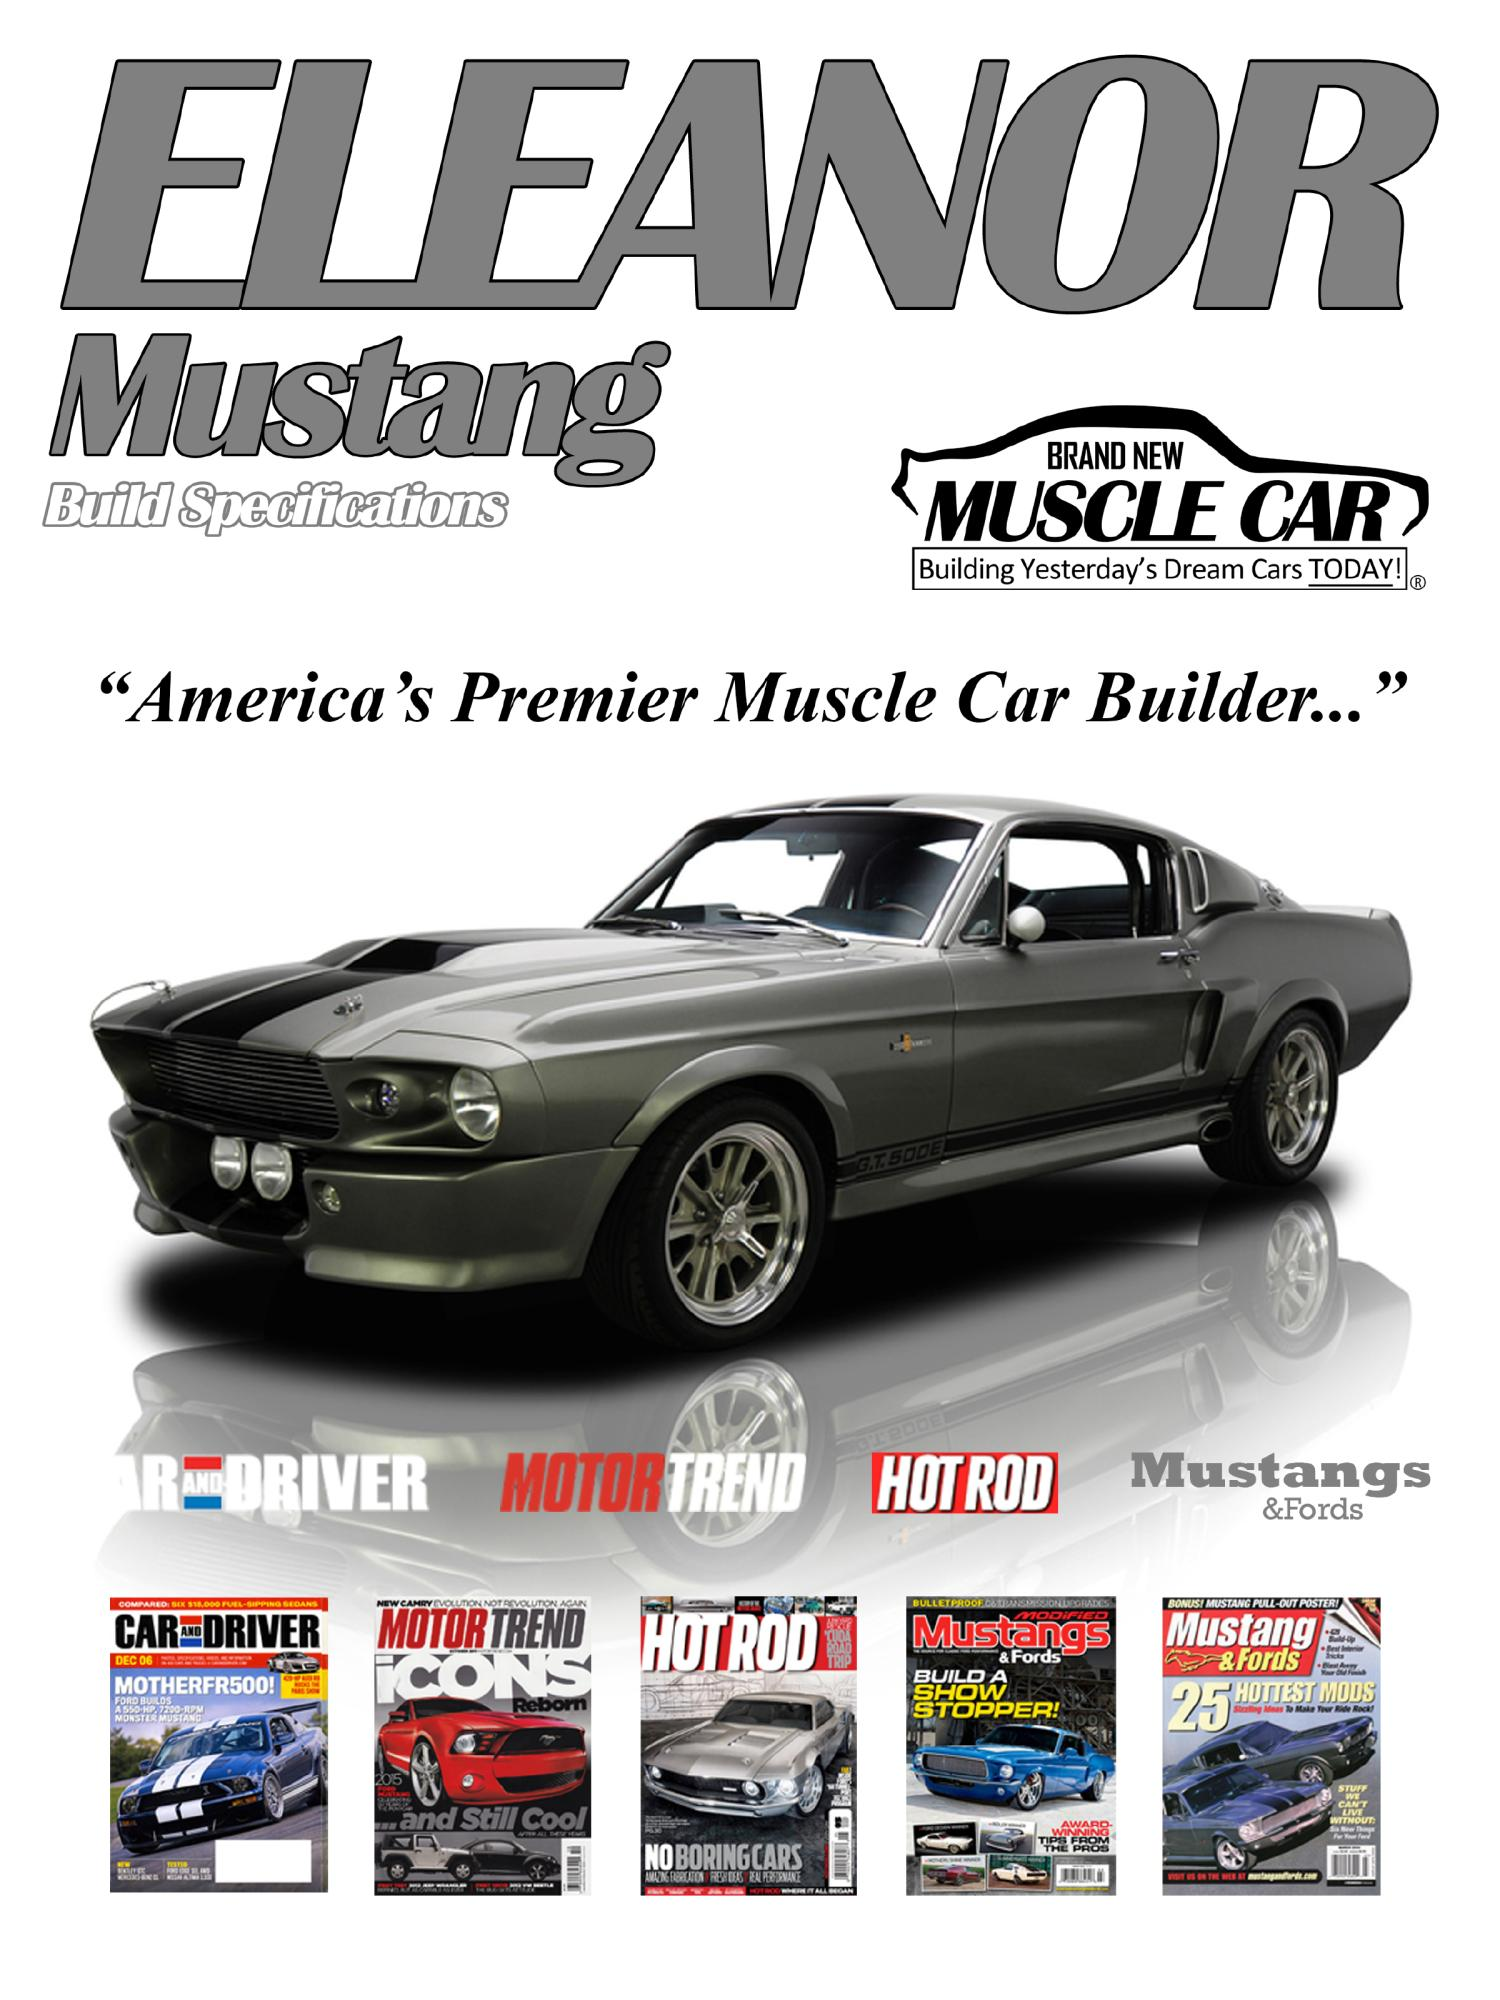 Eleanor brochure page 1 eleanor mustang replica builder for sale 1967 fordeleanor mustang fastback gt500e